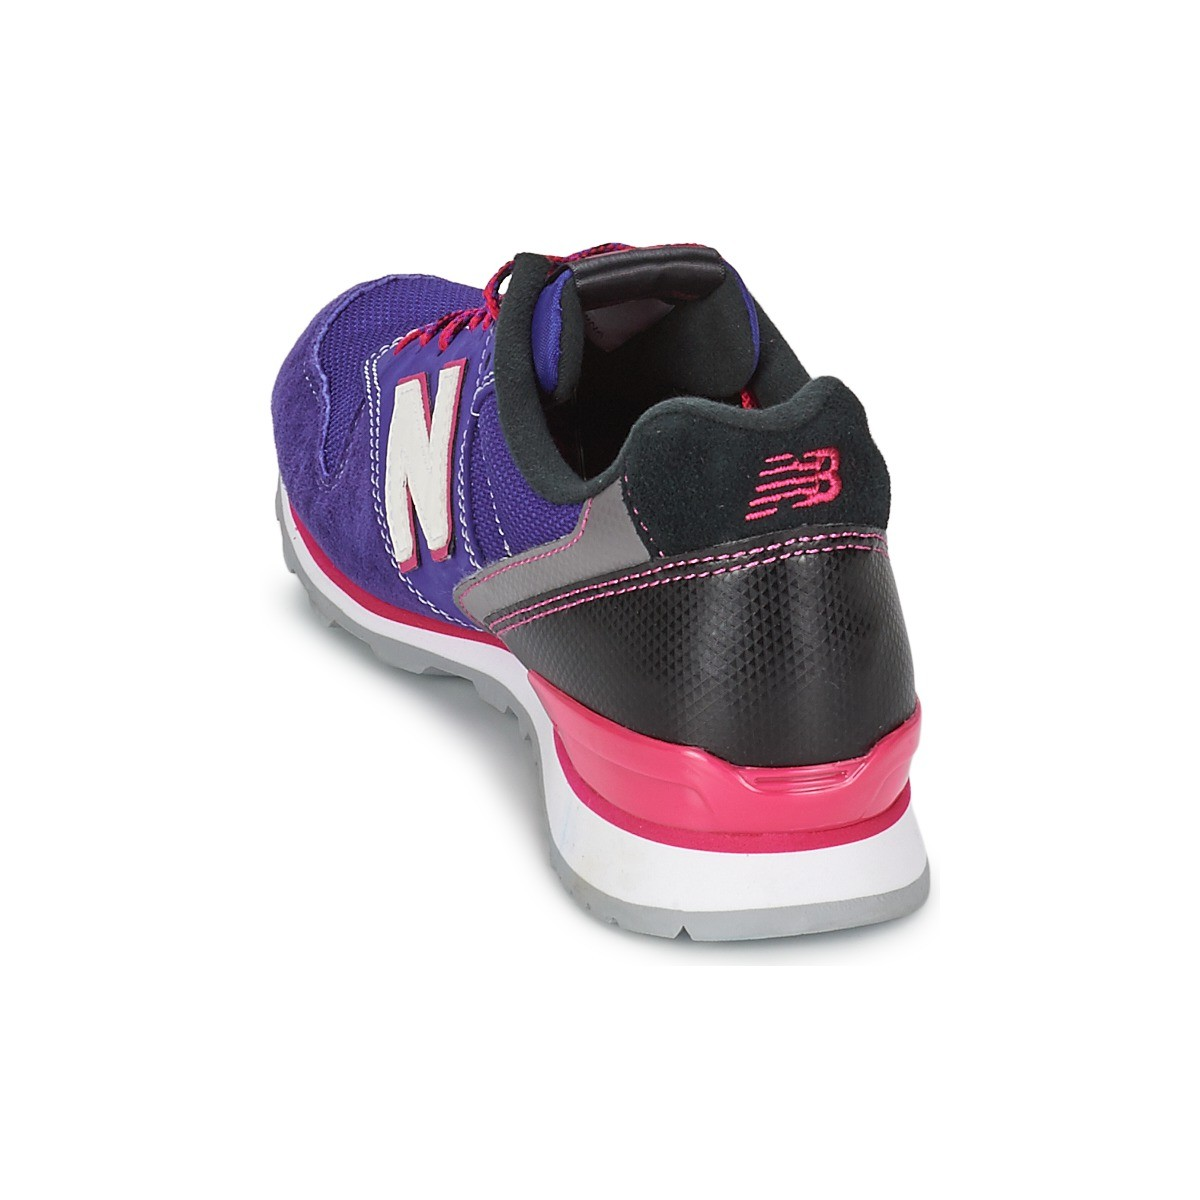 New Balance WR996 Shoes Womens Purple Rose Pink Black Grey White